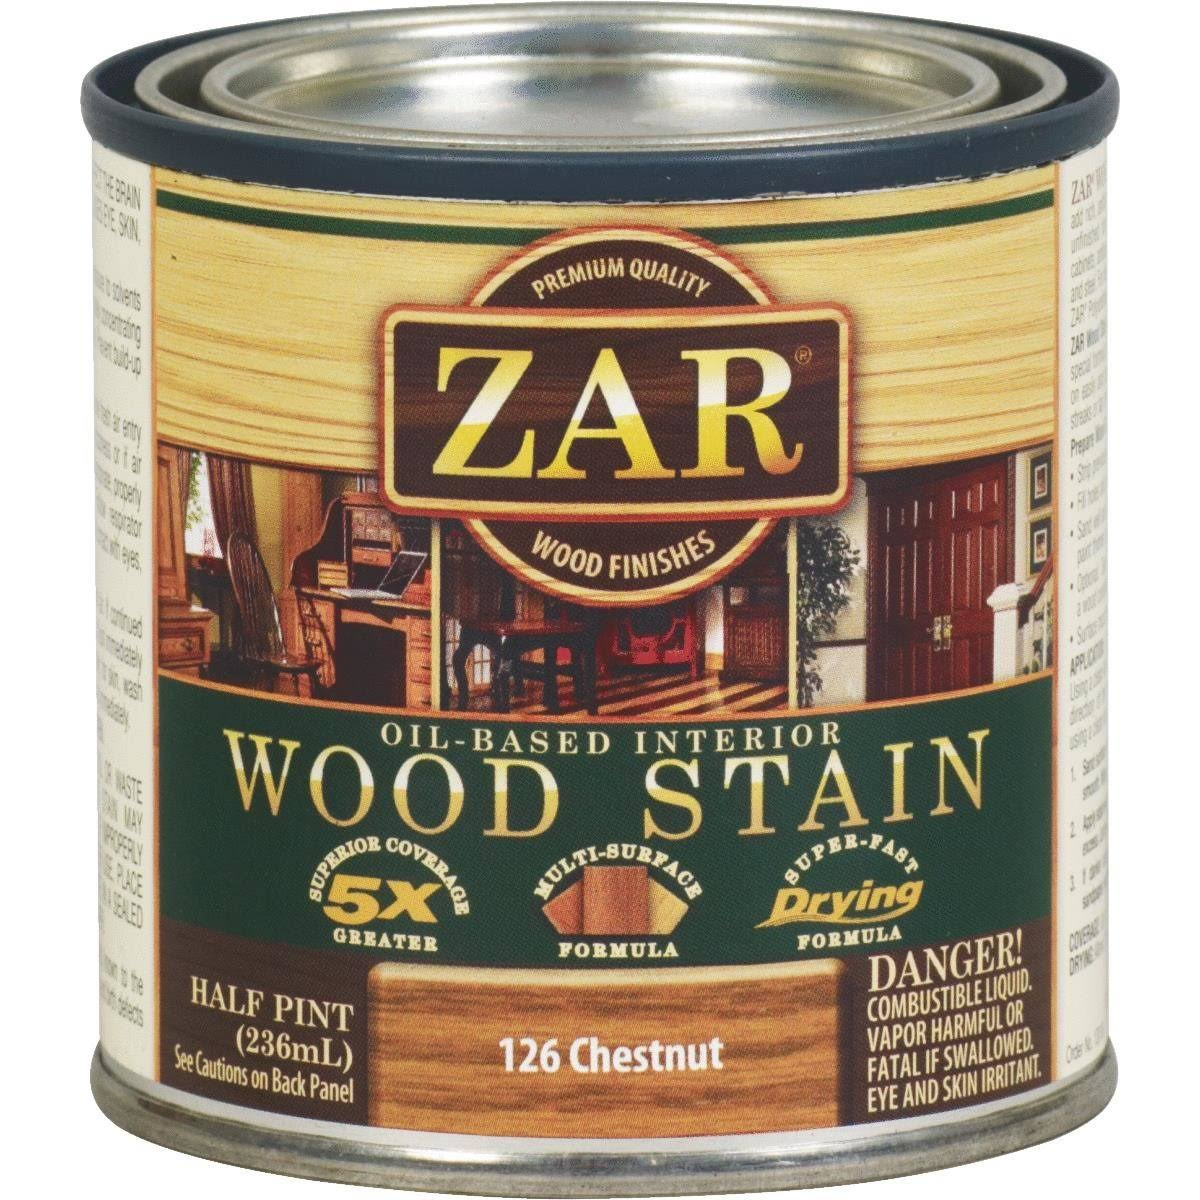 United Gilsonite Zar Oil Based Wood Stain - 126 Chestnut